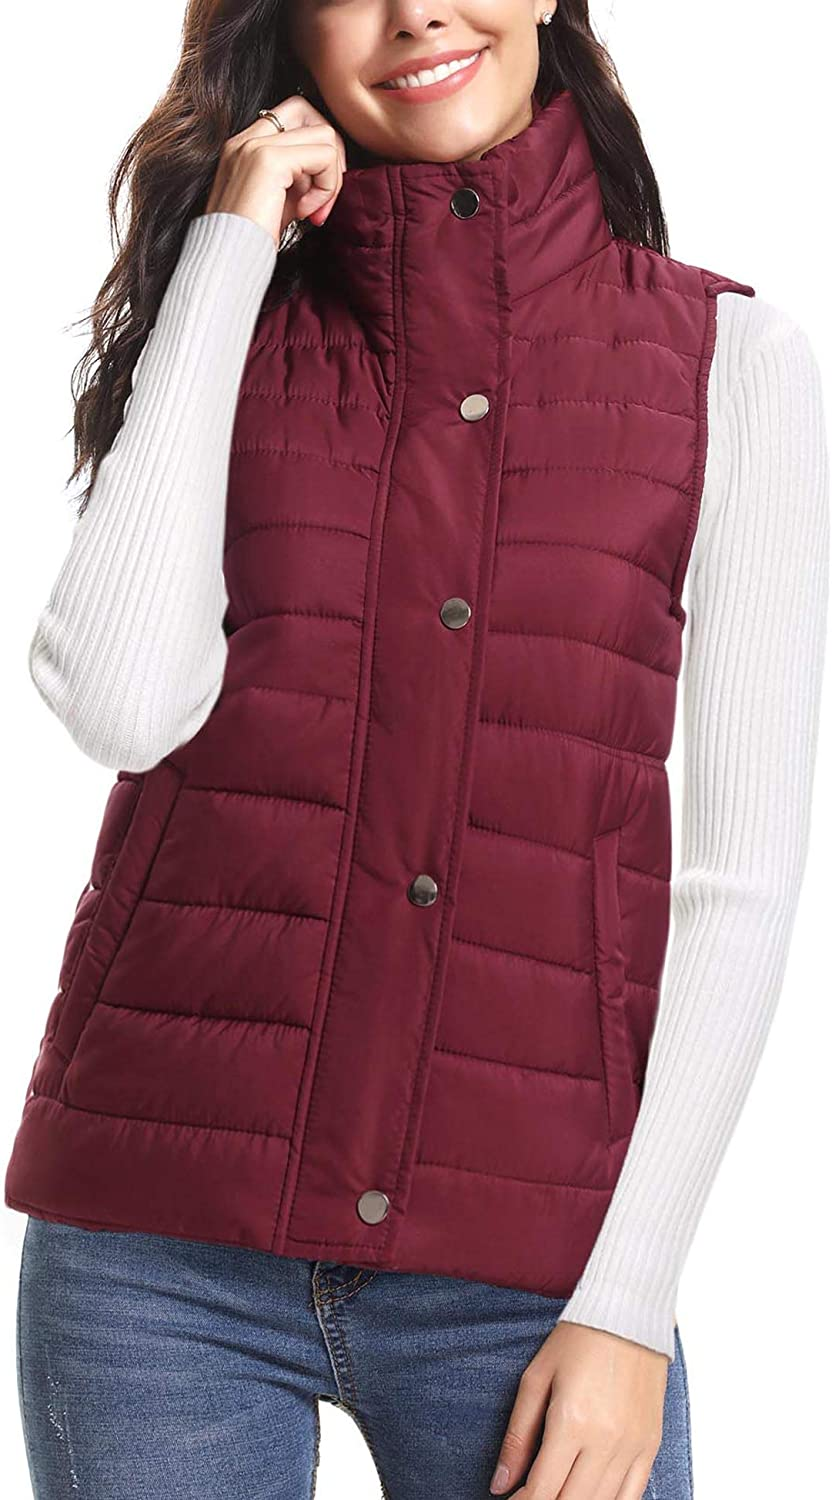 iClosam Womens Winter Puffer Vest Lightweight Packable Vest Quilted Jacket Outerwear Vests